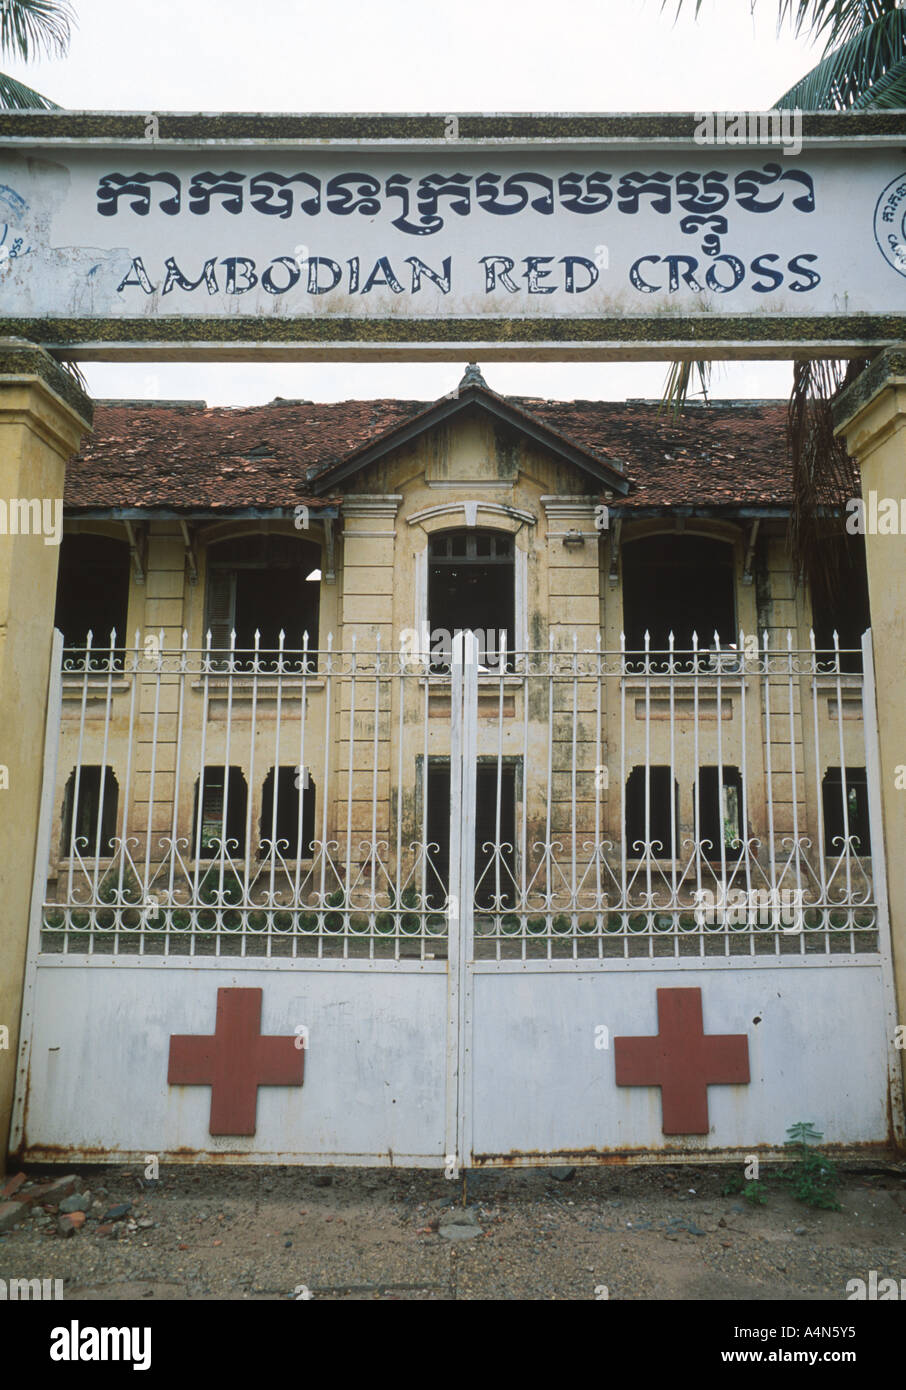 cambodia-phnom-penh-cambodian-red-cross-building-now-derelict-french-A4N5Y5.jpg